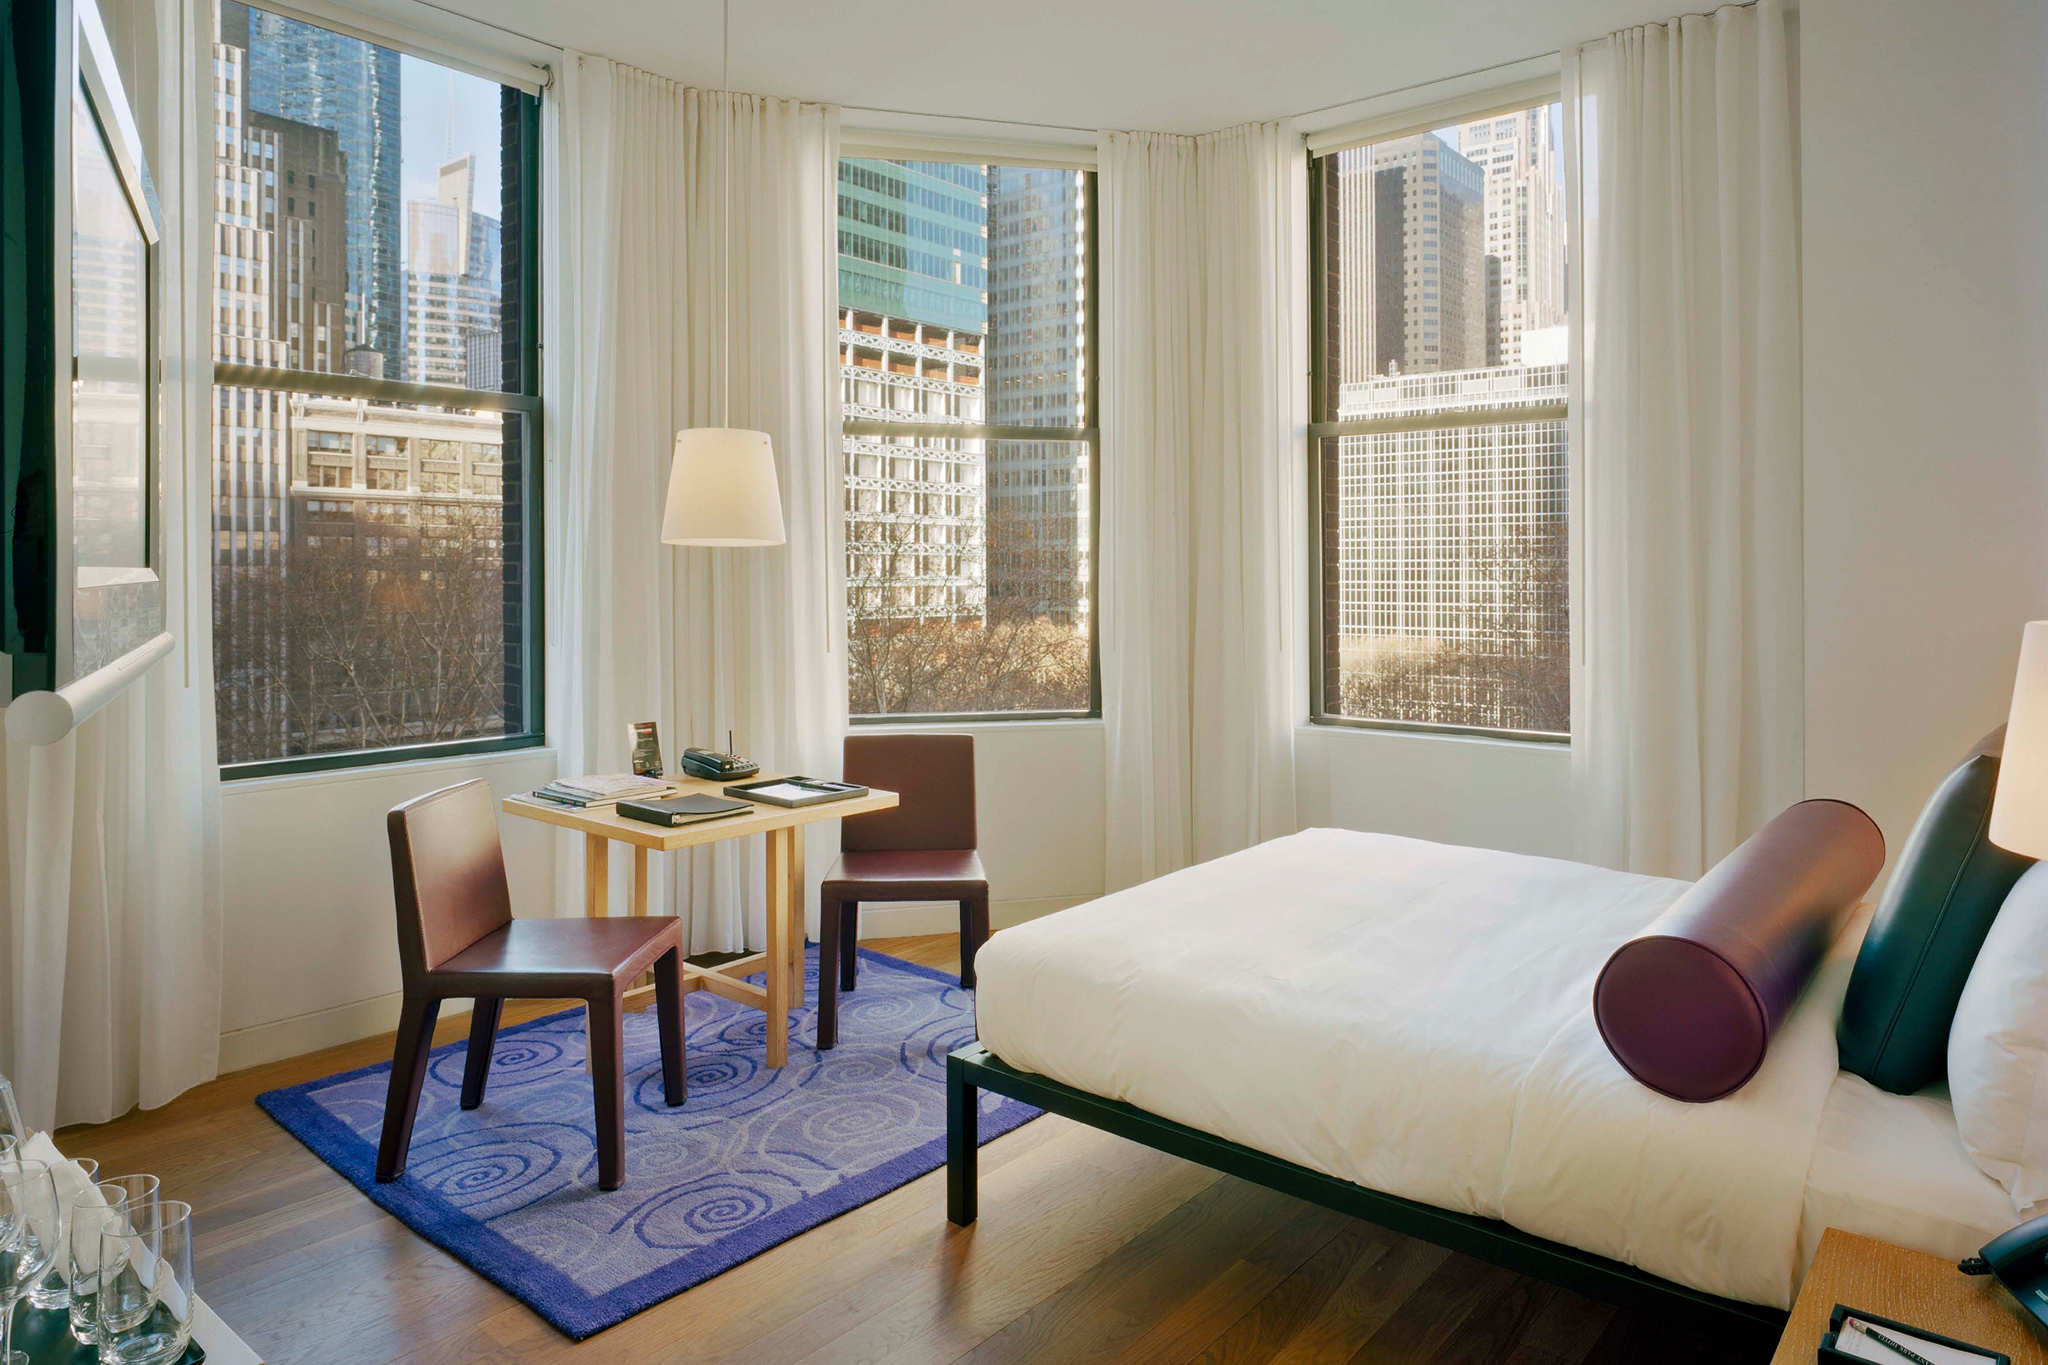 The best hotels near Bryant Park